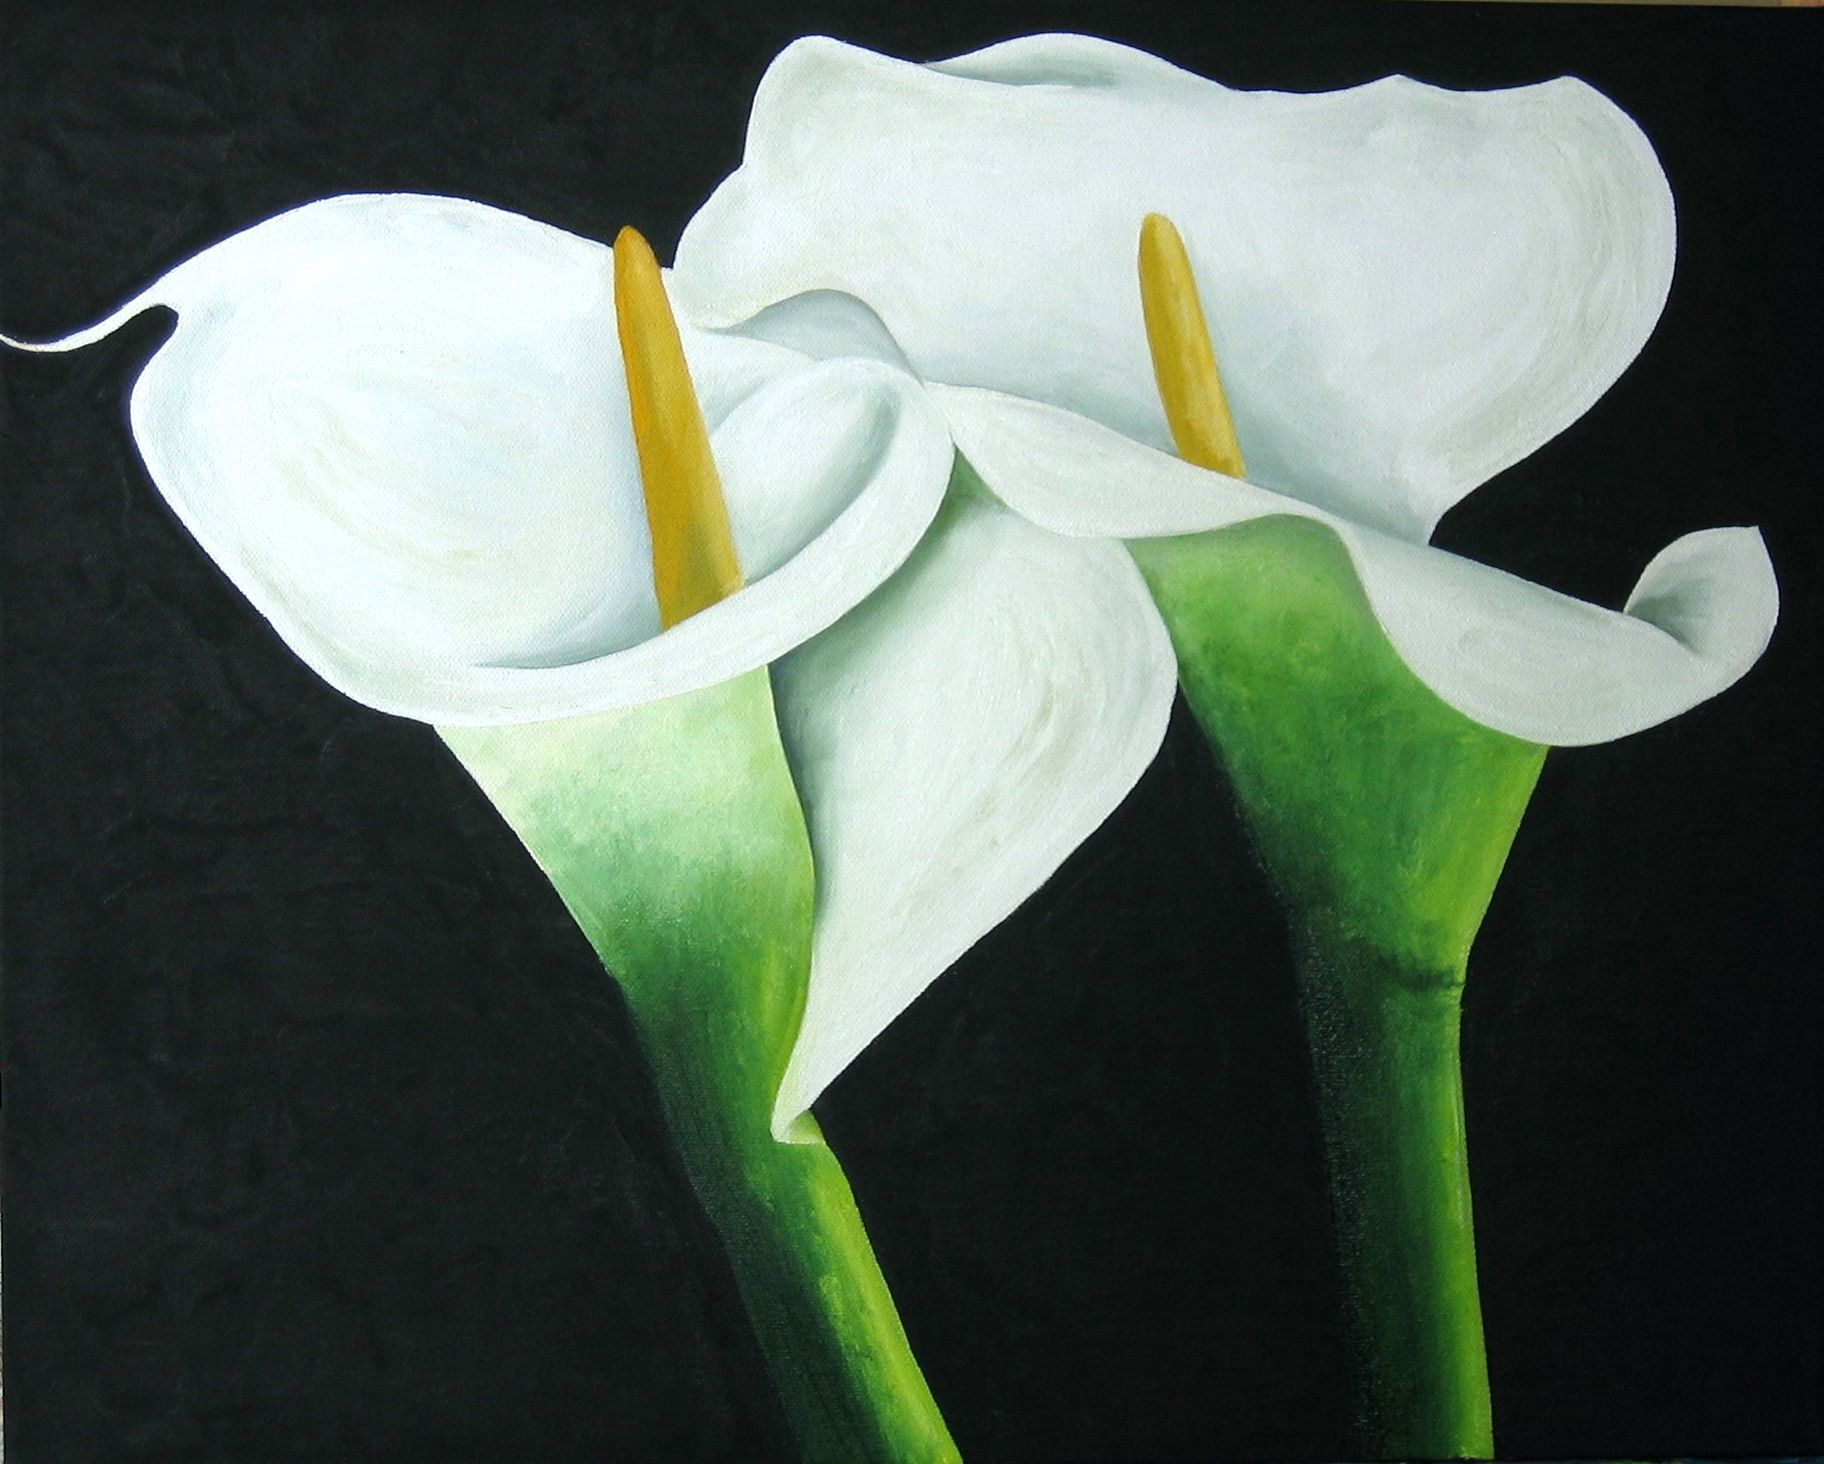 Flower meanings lily - Calla Lilies Jpg 1824 1464 Pixels